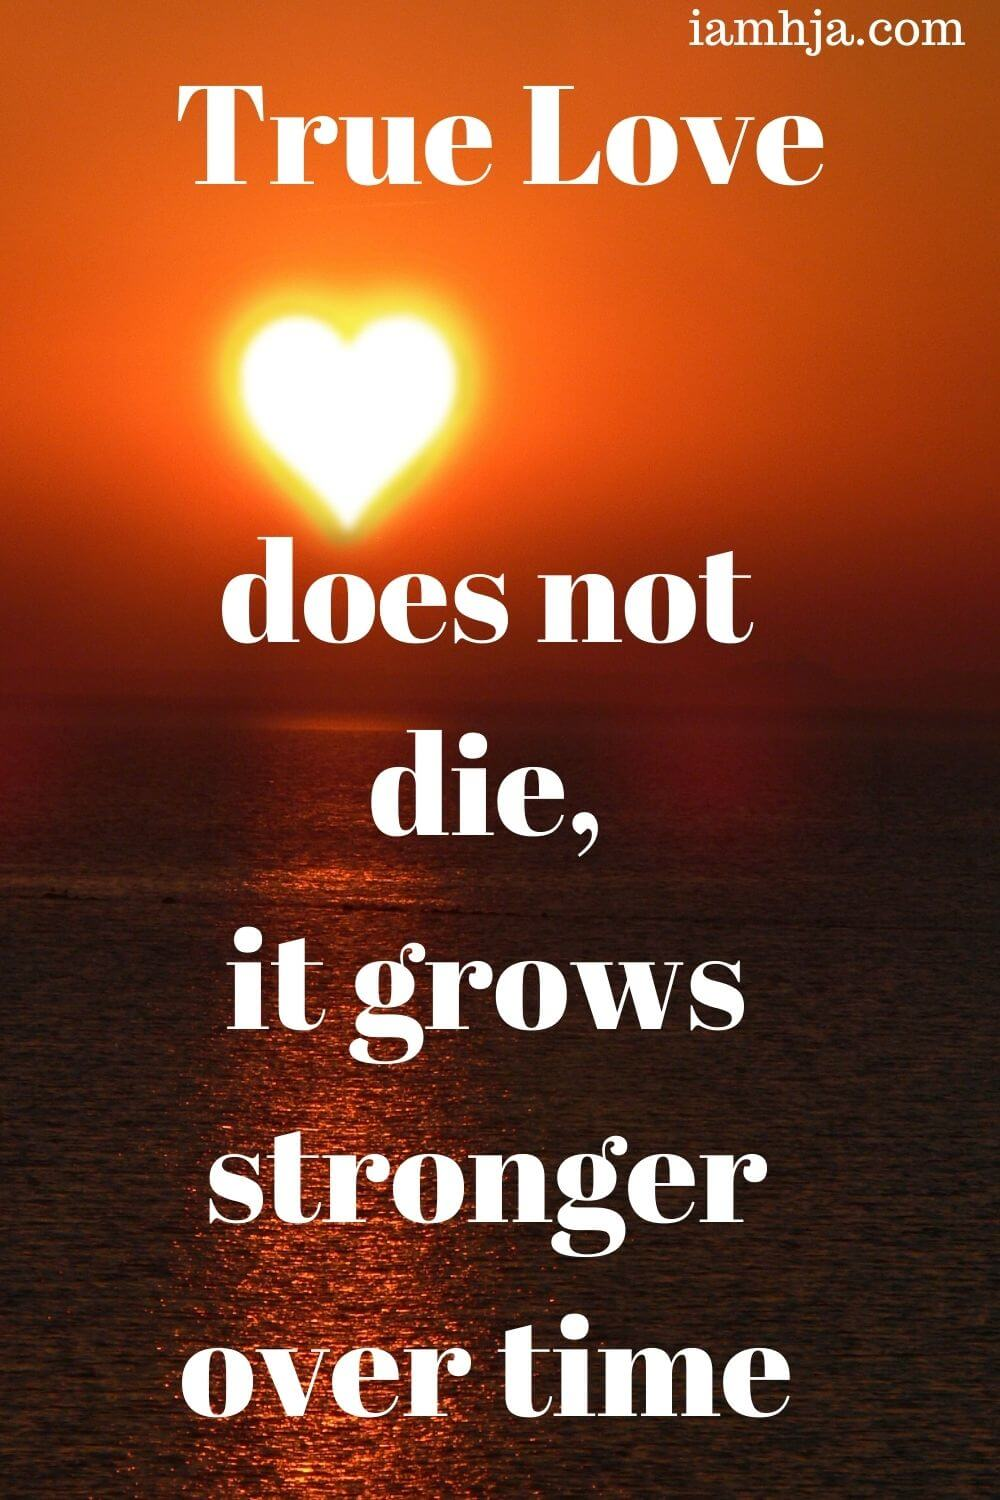 True love does not die, it grows stronger over time